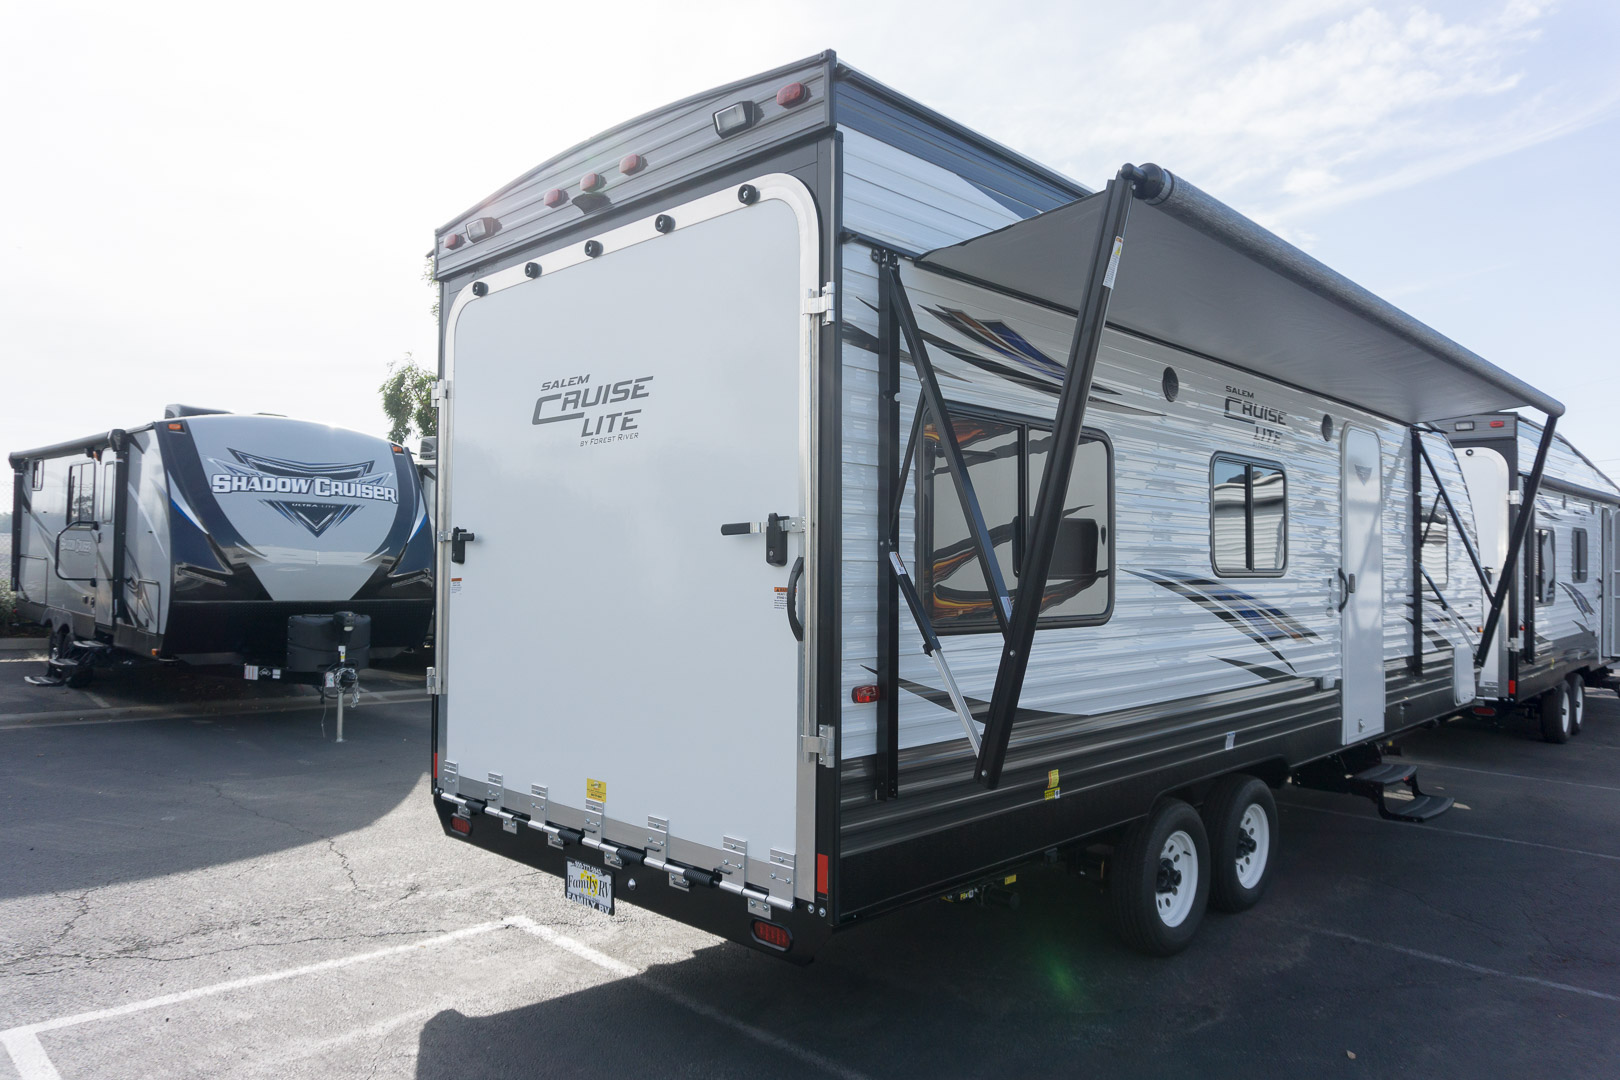 2019 FOREST RIVER SALEM CRUISE LITE 211SSXL